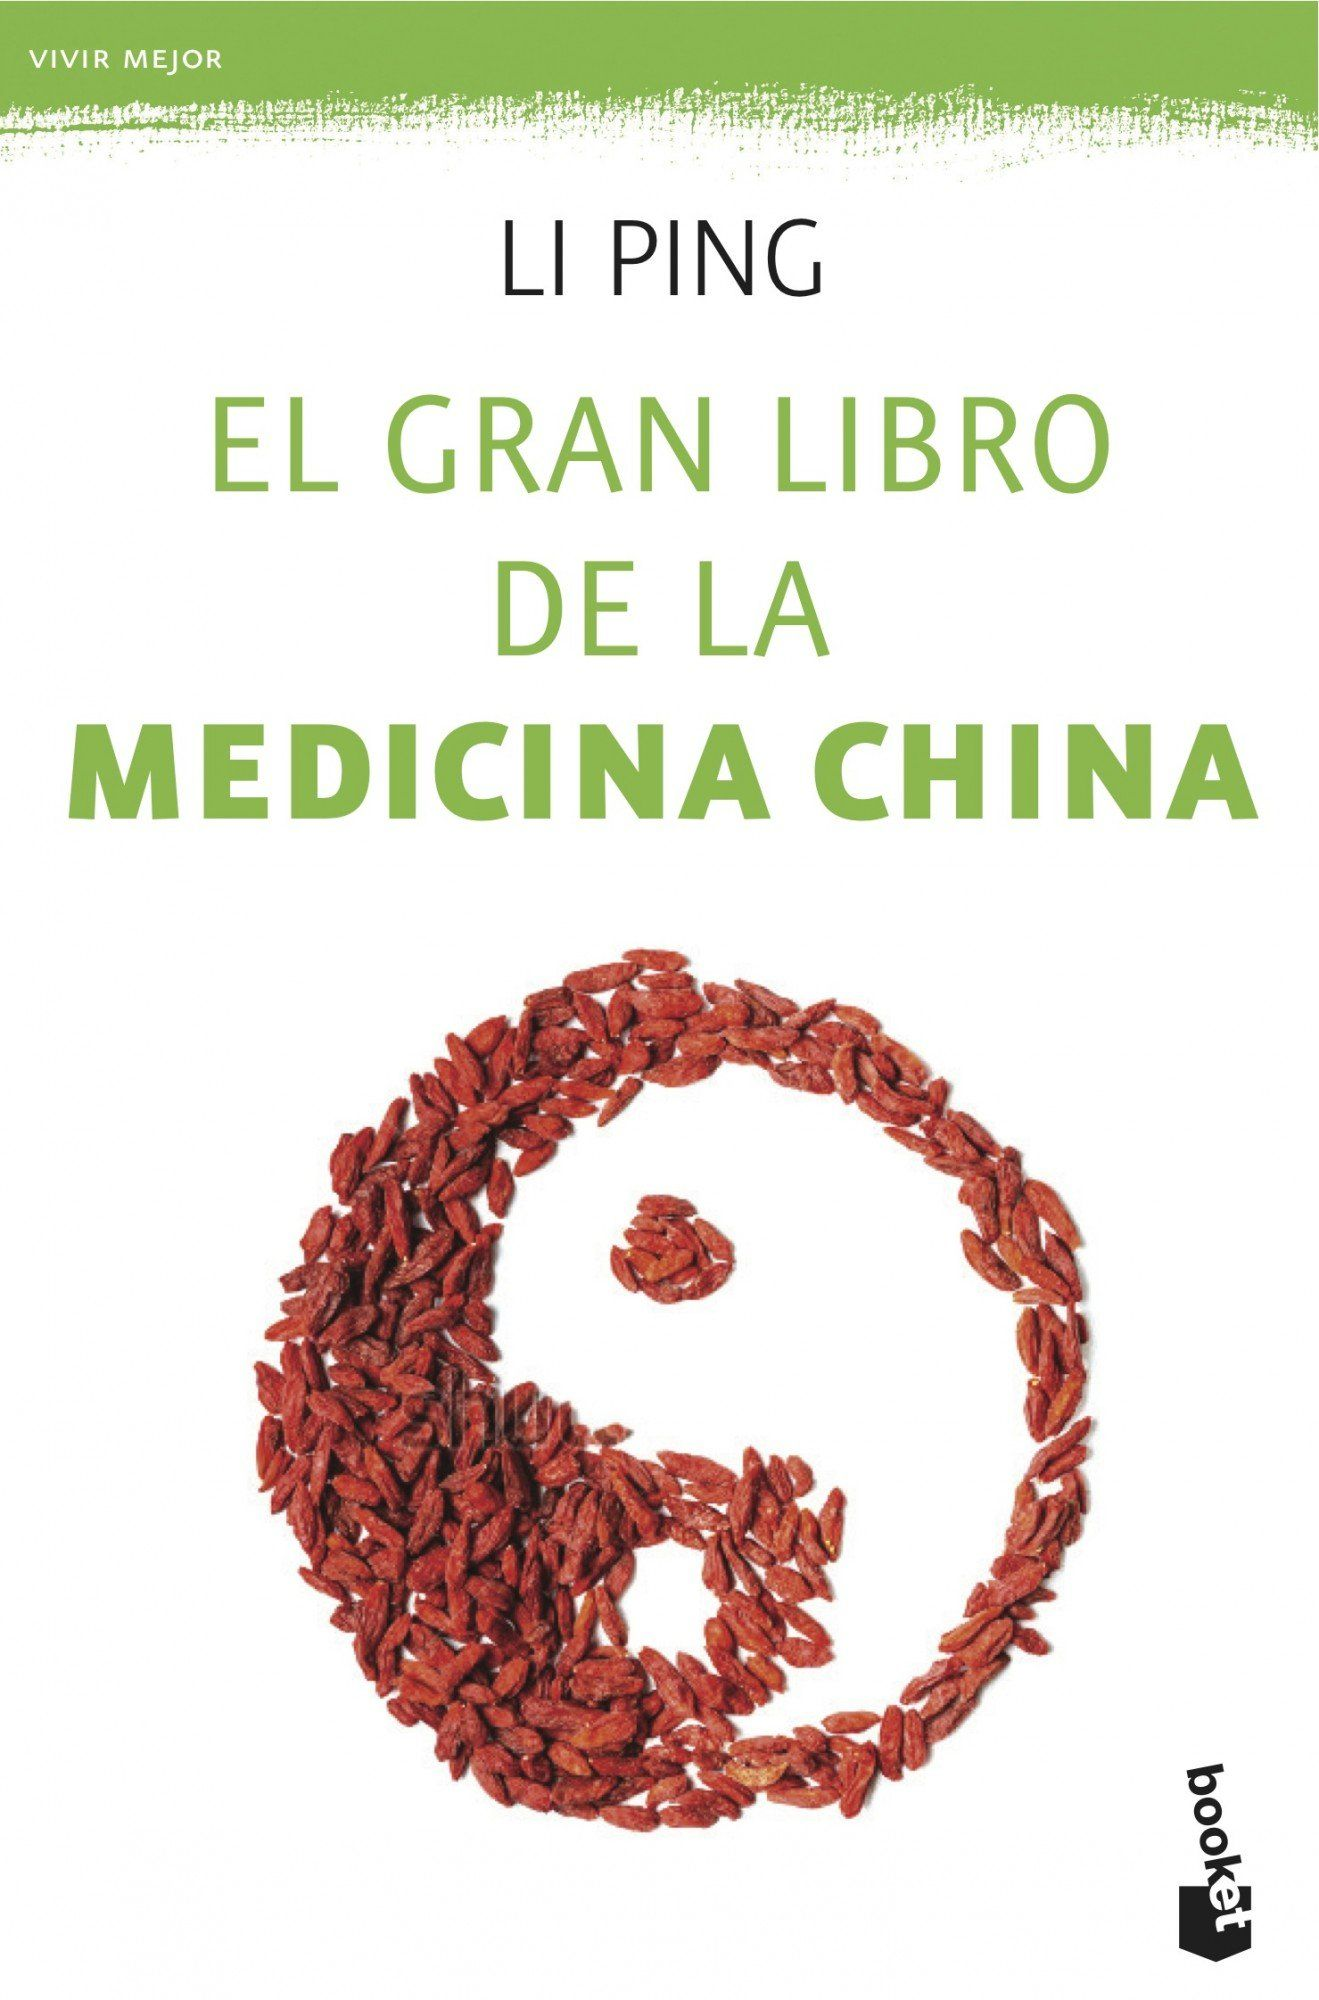 Libros Medicina China Extenso Imprescindible Y Detallado Manual Sobre La